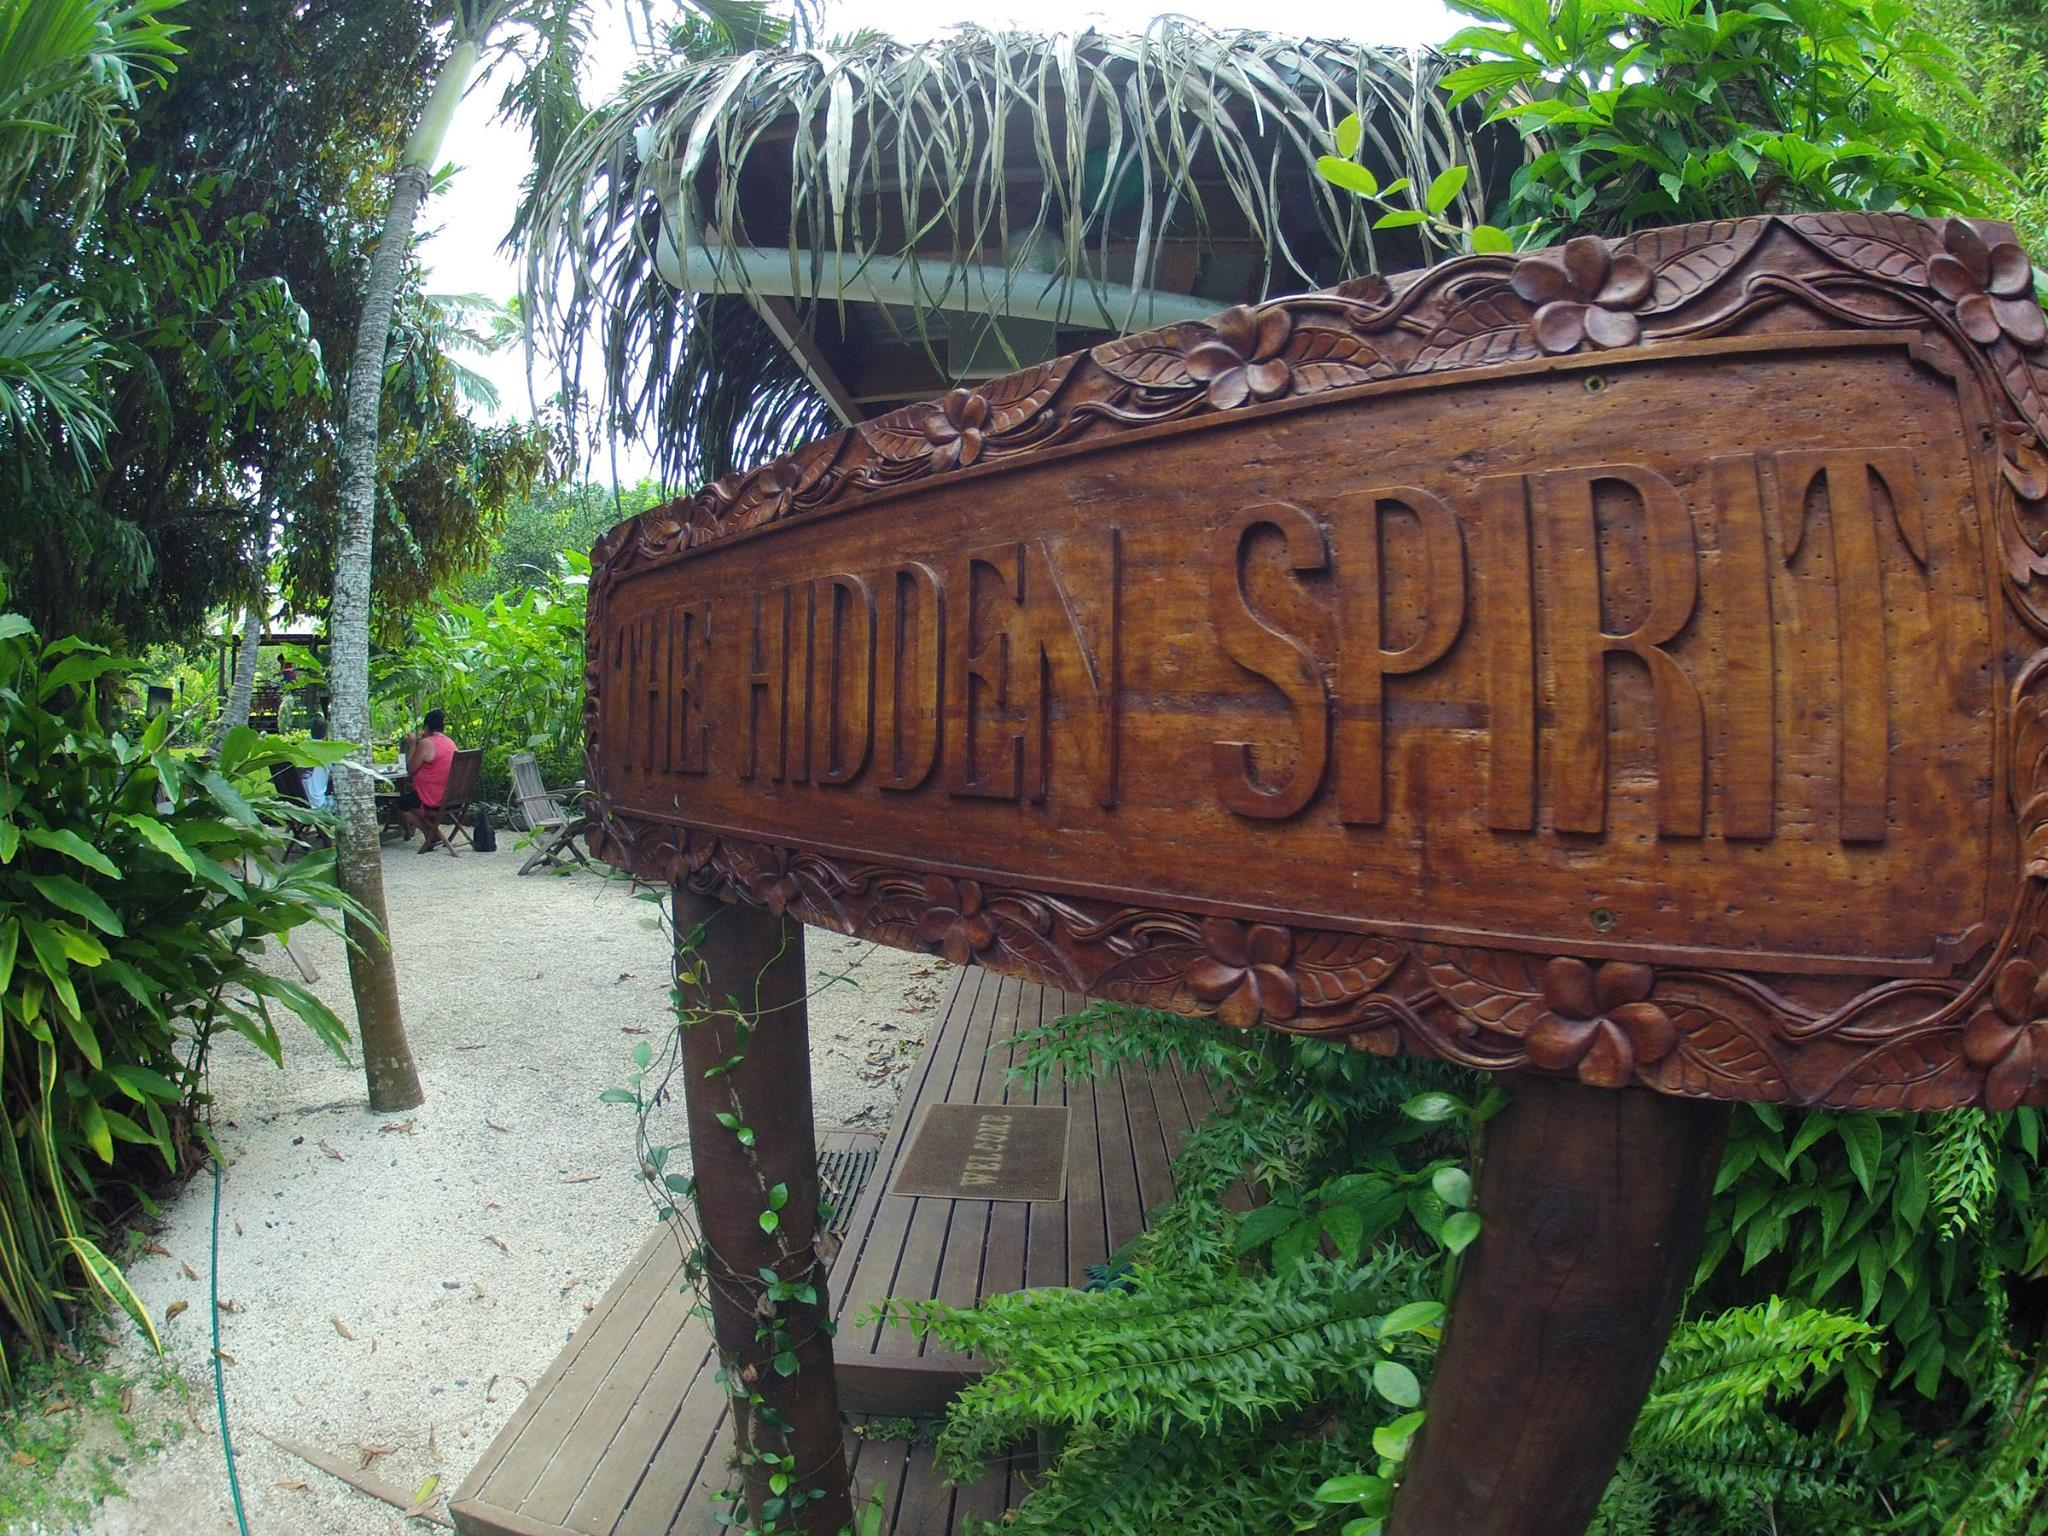 Hidden Spirit Cafe